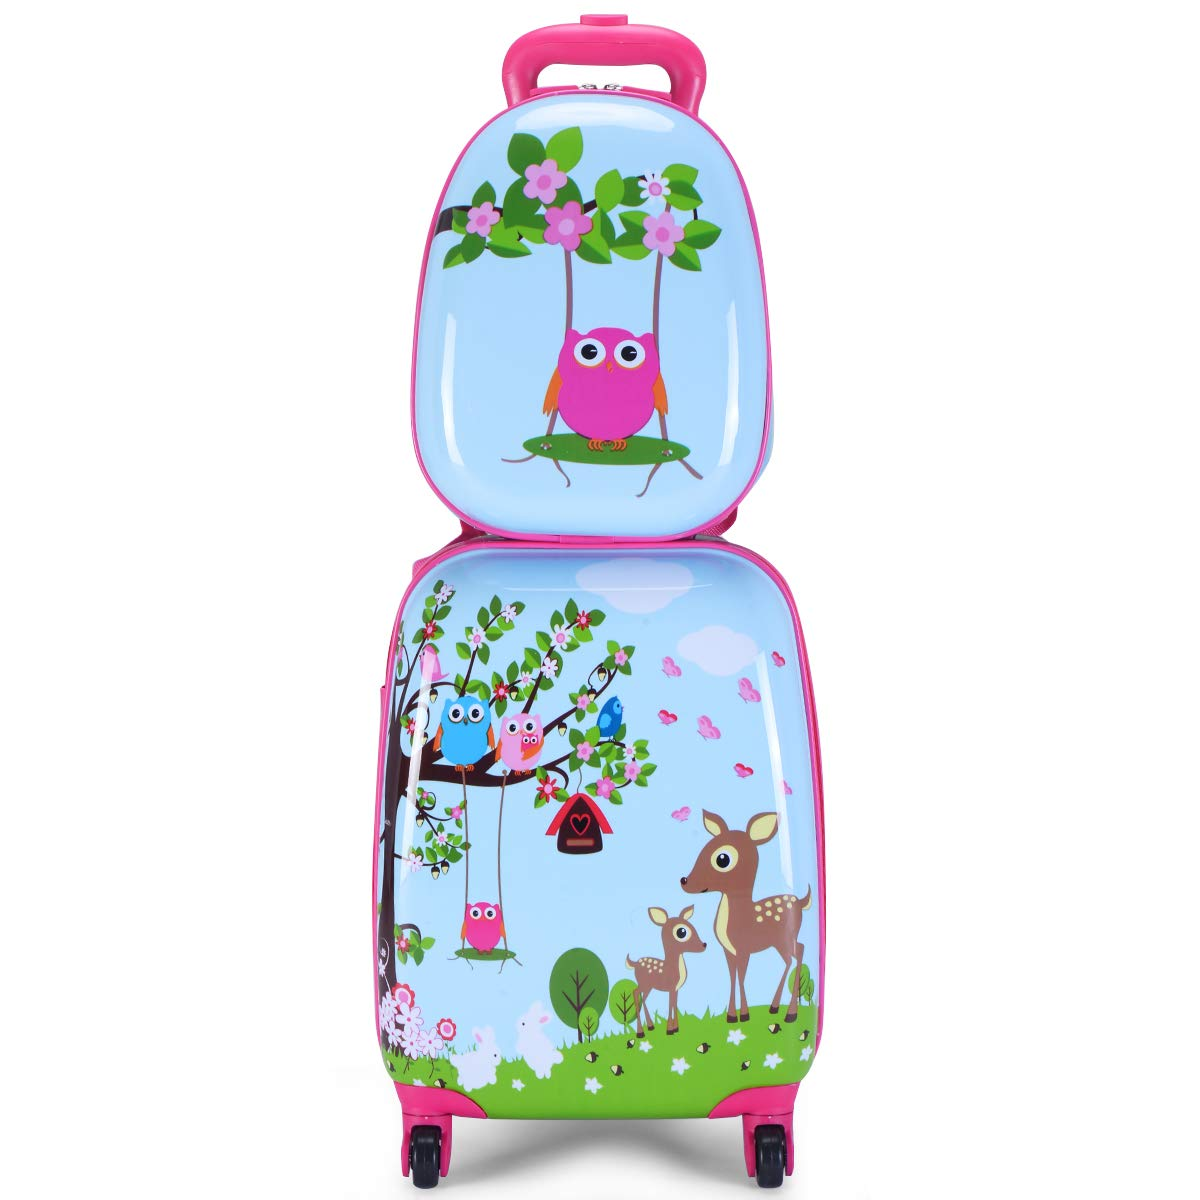 Goplus 2Pc 12' 16' Kids Carry On Luggage Set Upright Hard Side Hard Shell Suitcase Travel Trolley ABS